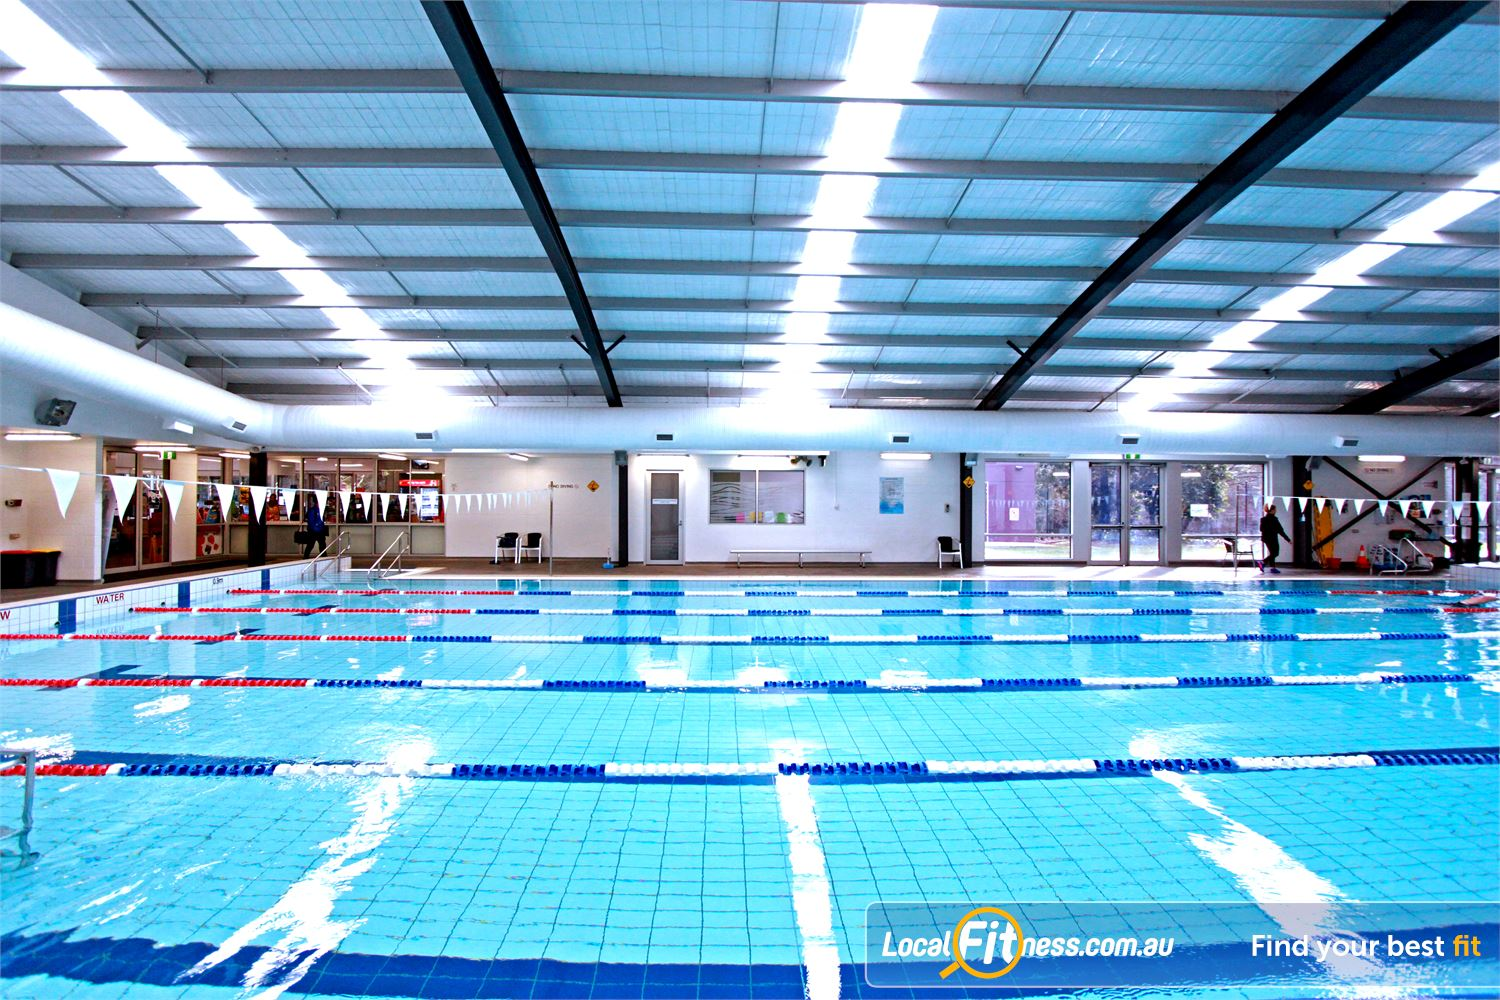 Monbulk Aquatic Centre Near Mount Evelyn Equipped your children with our Monbulk swim school programs.